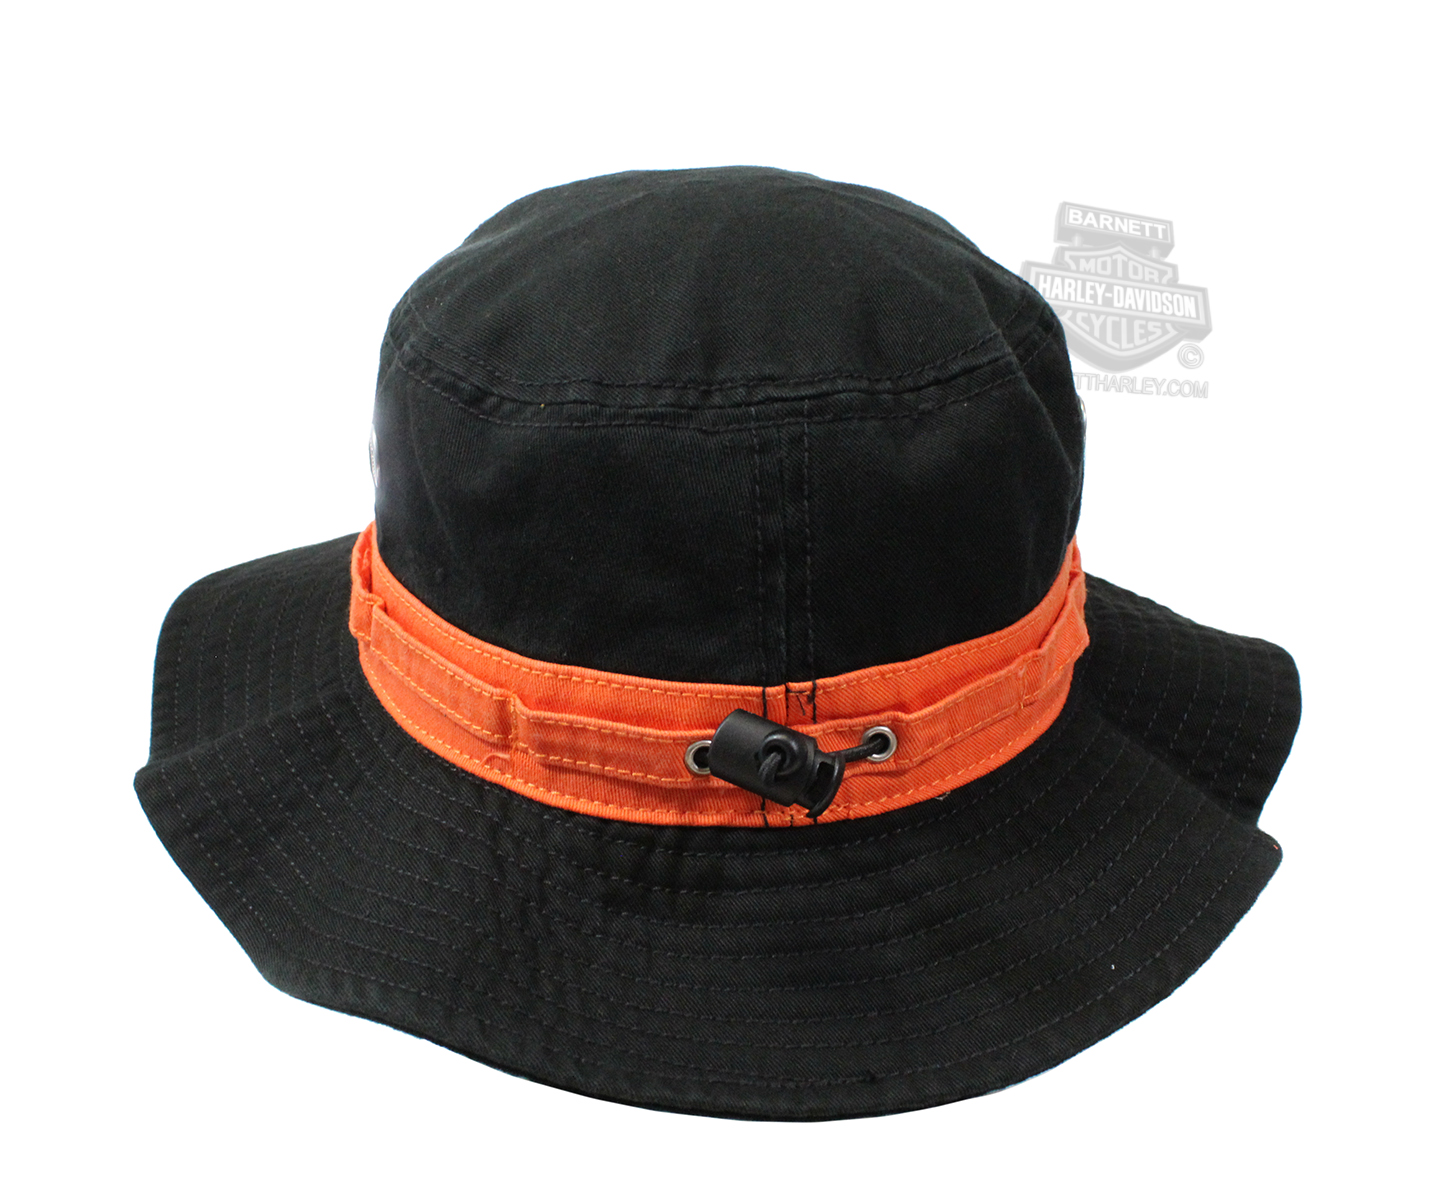 9cebb668cad9d FM-HD-482 - Harley-Davidson® Mens Embroidered Willie G Skull Black Cotton Boonie  Hat - Barnett Harley-Davidson®